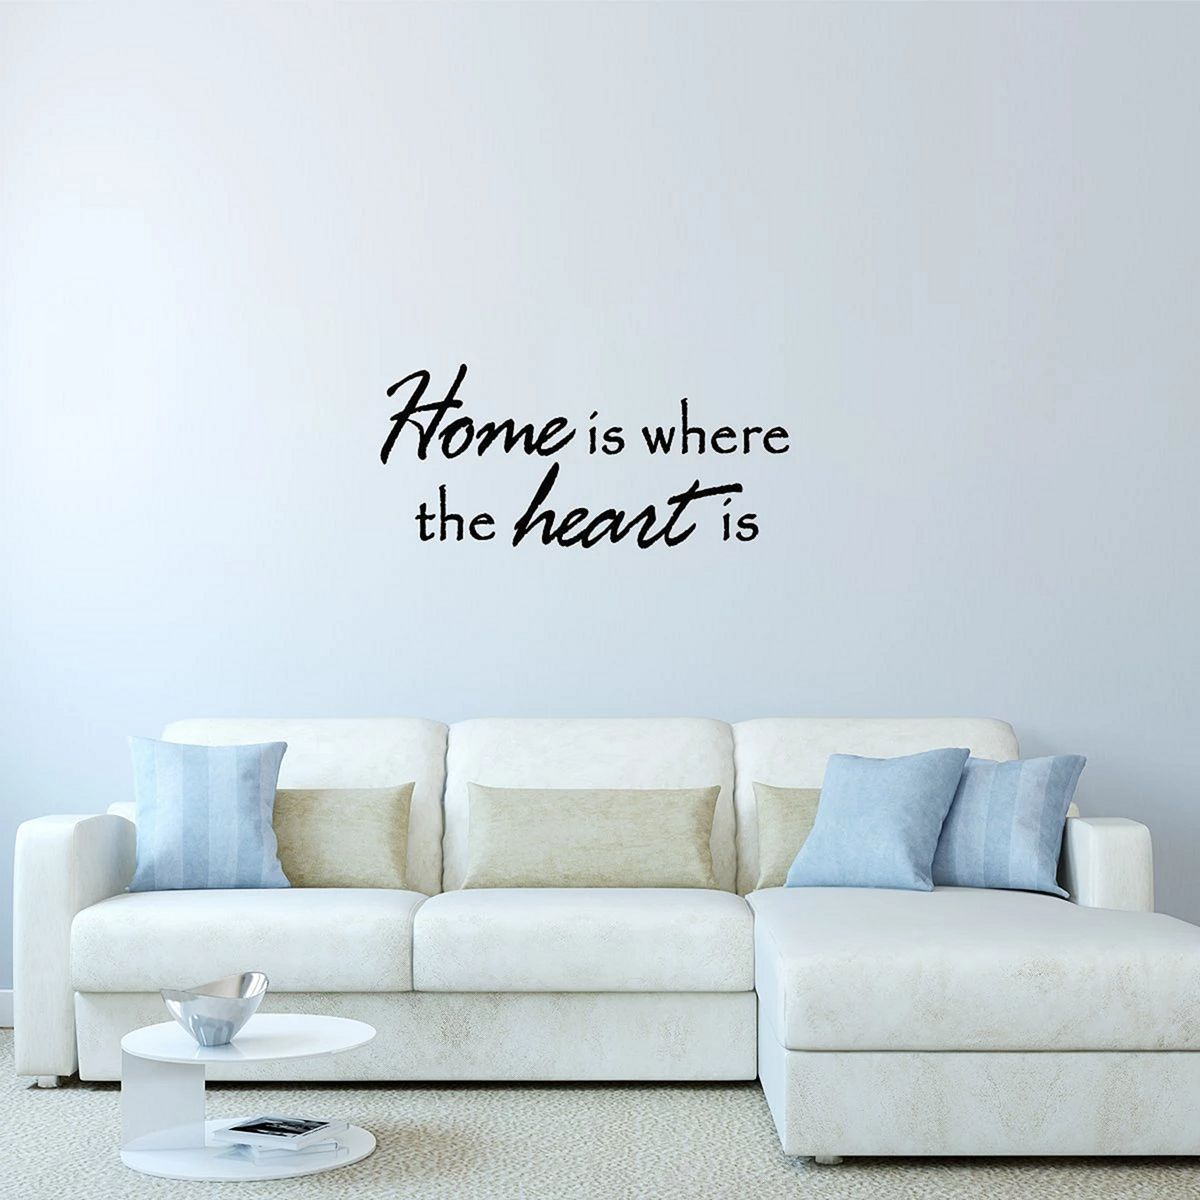 10 Best Living Room Decoration With Beautiful Wall Quote Ideas Vinyl Wall Wall Decals Vinyl Wall Decals